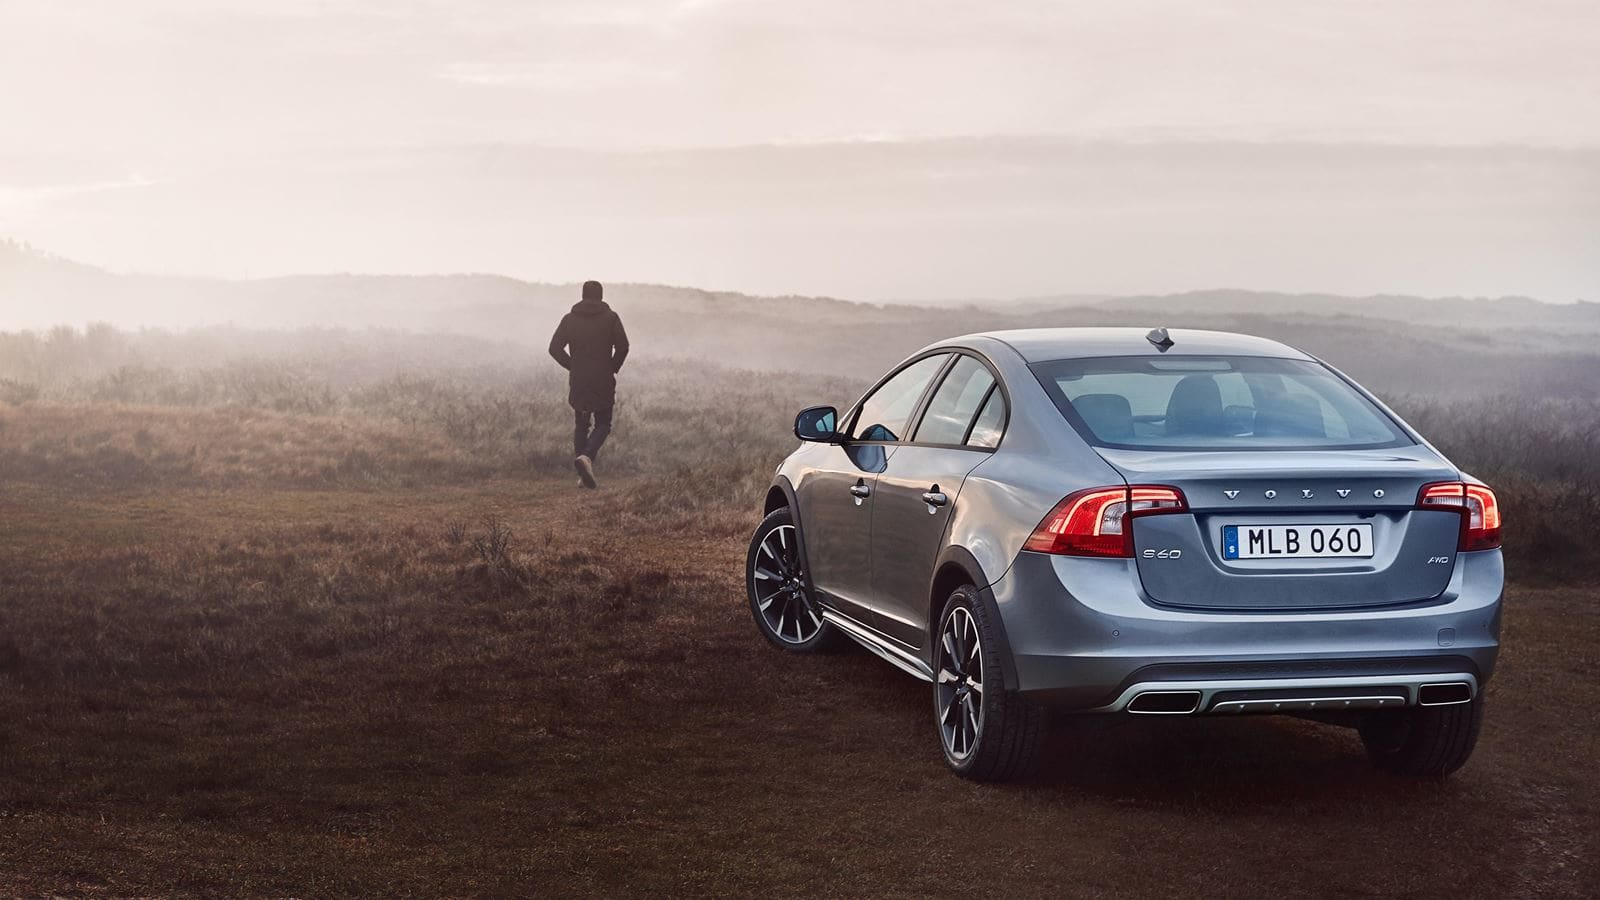 volvo-s60-crosscountry-exterior-left-back-patrik-johall-v1_1